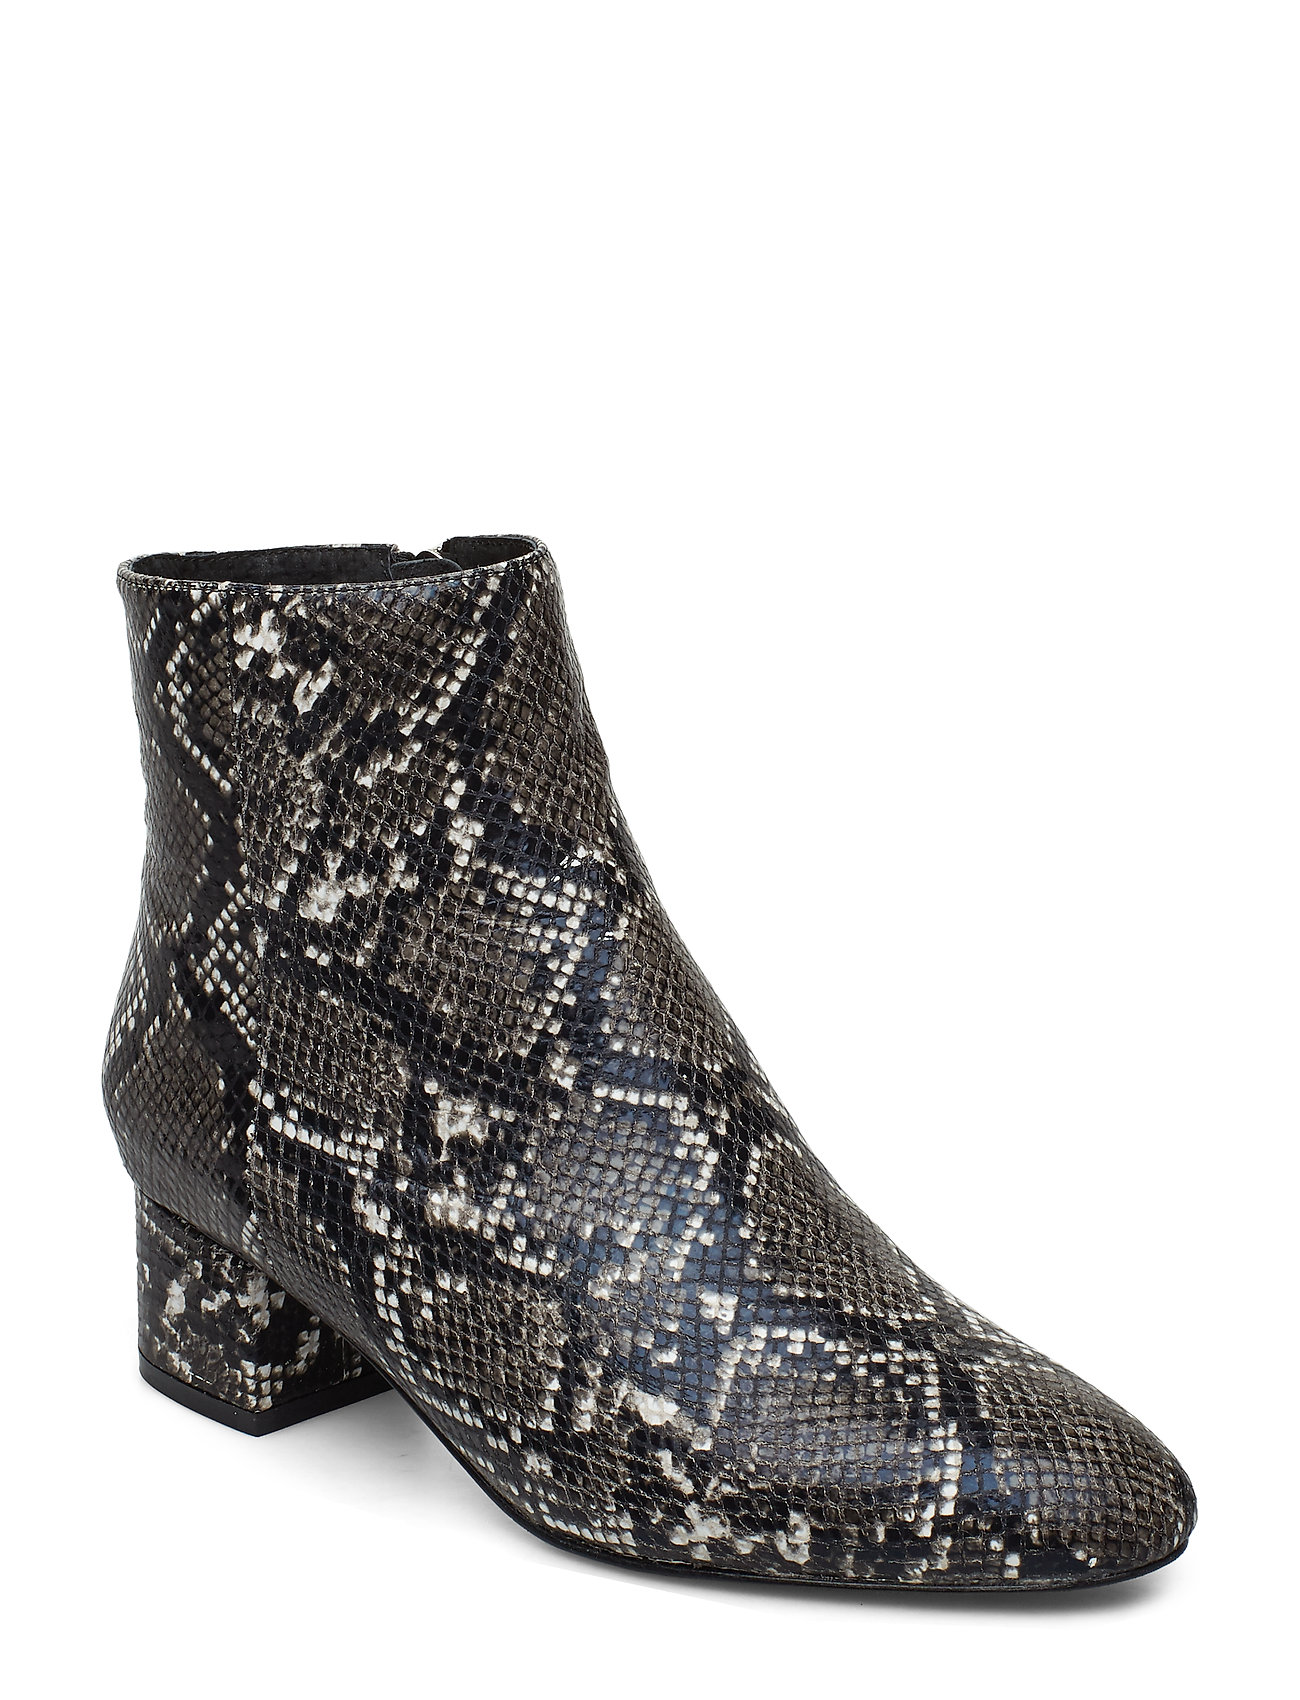 Image of Vicky Snake Shoes Boots Ankle Boots Ankle Boot - Heel Hvid Shoe The Bear (3406197703)